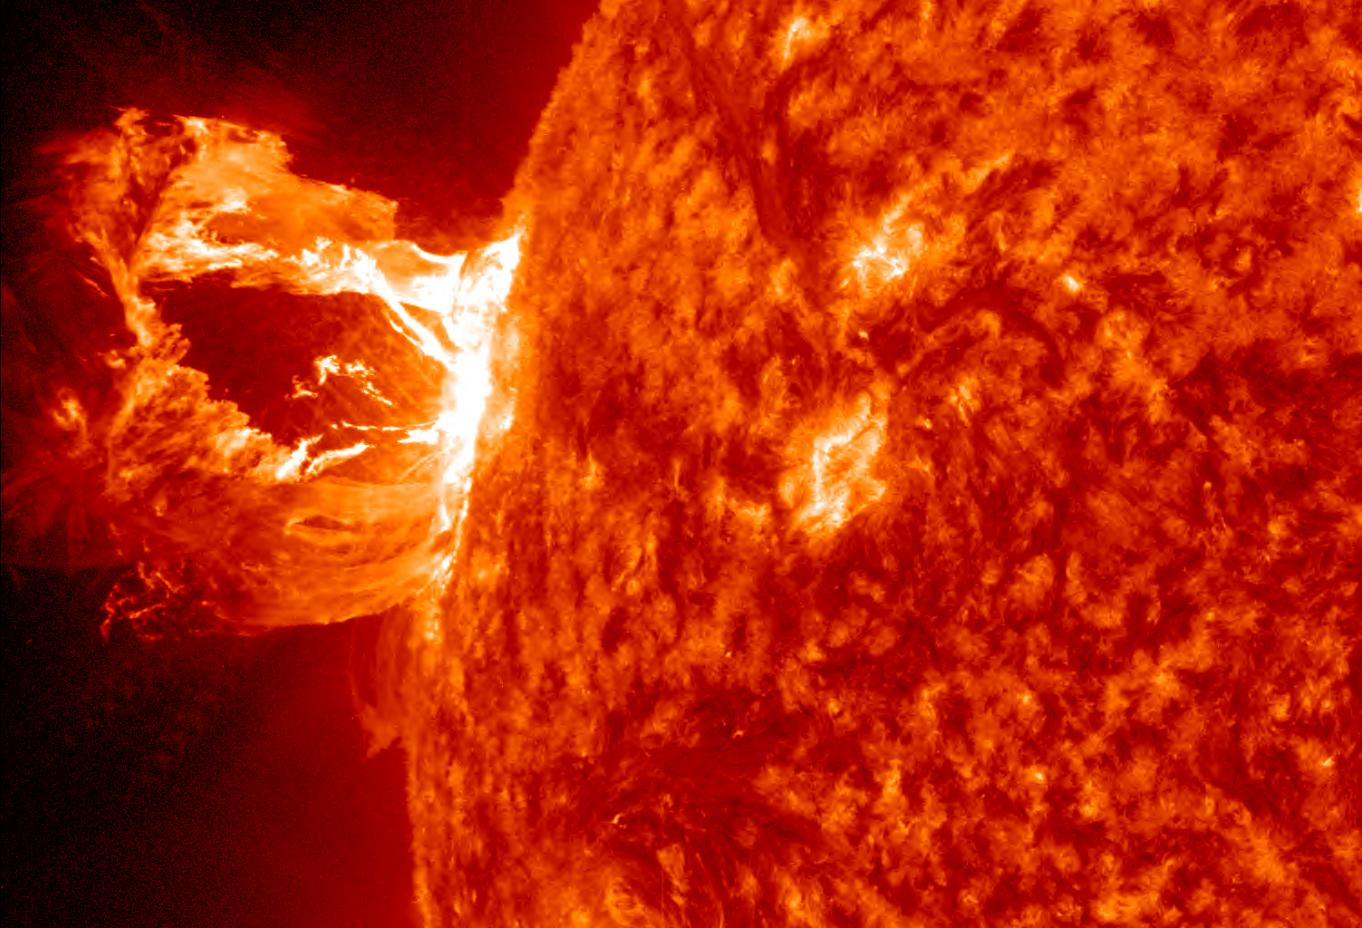 The Sun's magnetic field controls many phenomena, such as this solar flare seen by NASA's Solar Dynamics Observatory